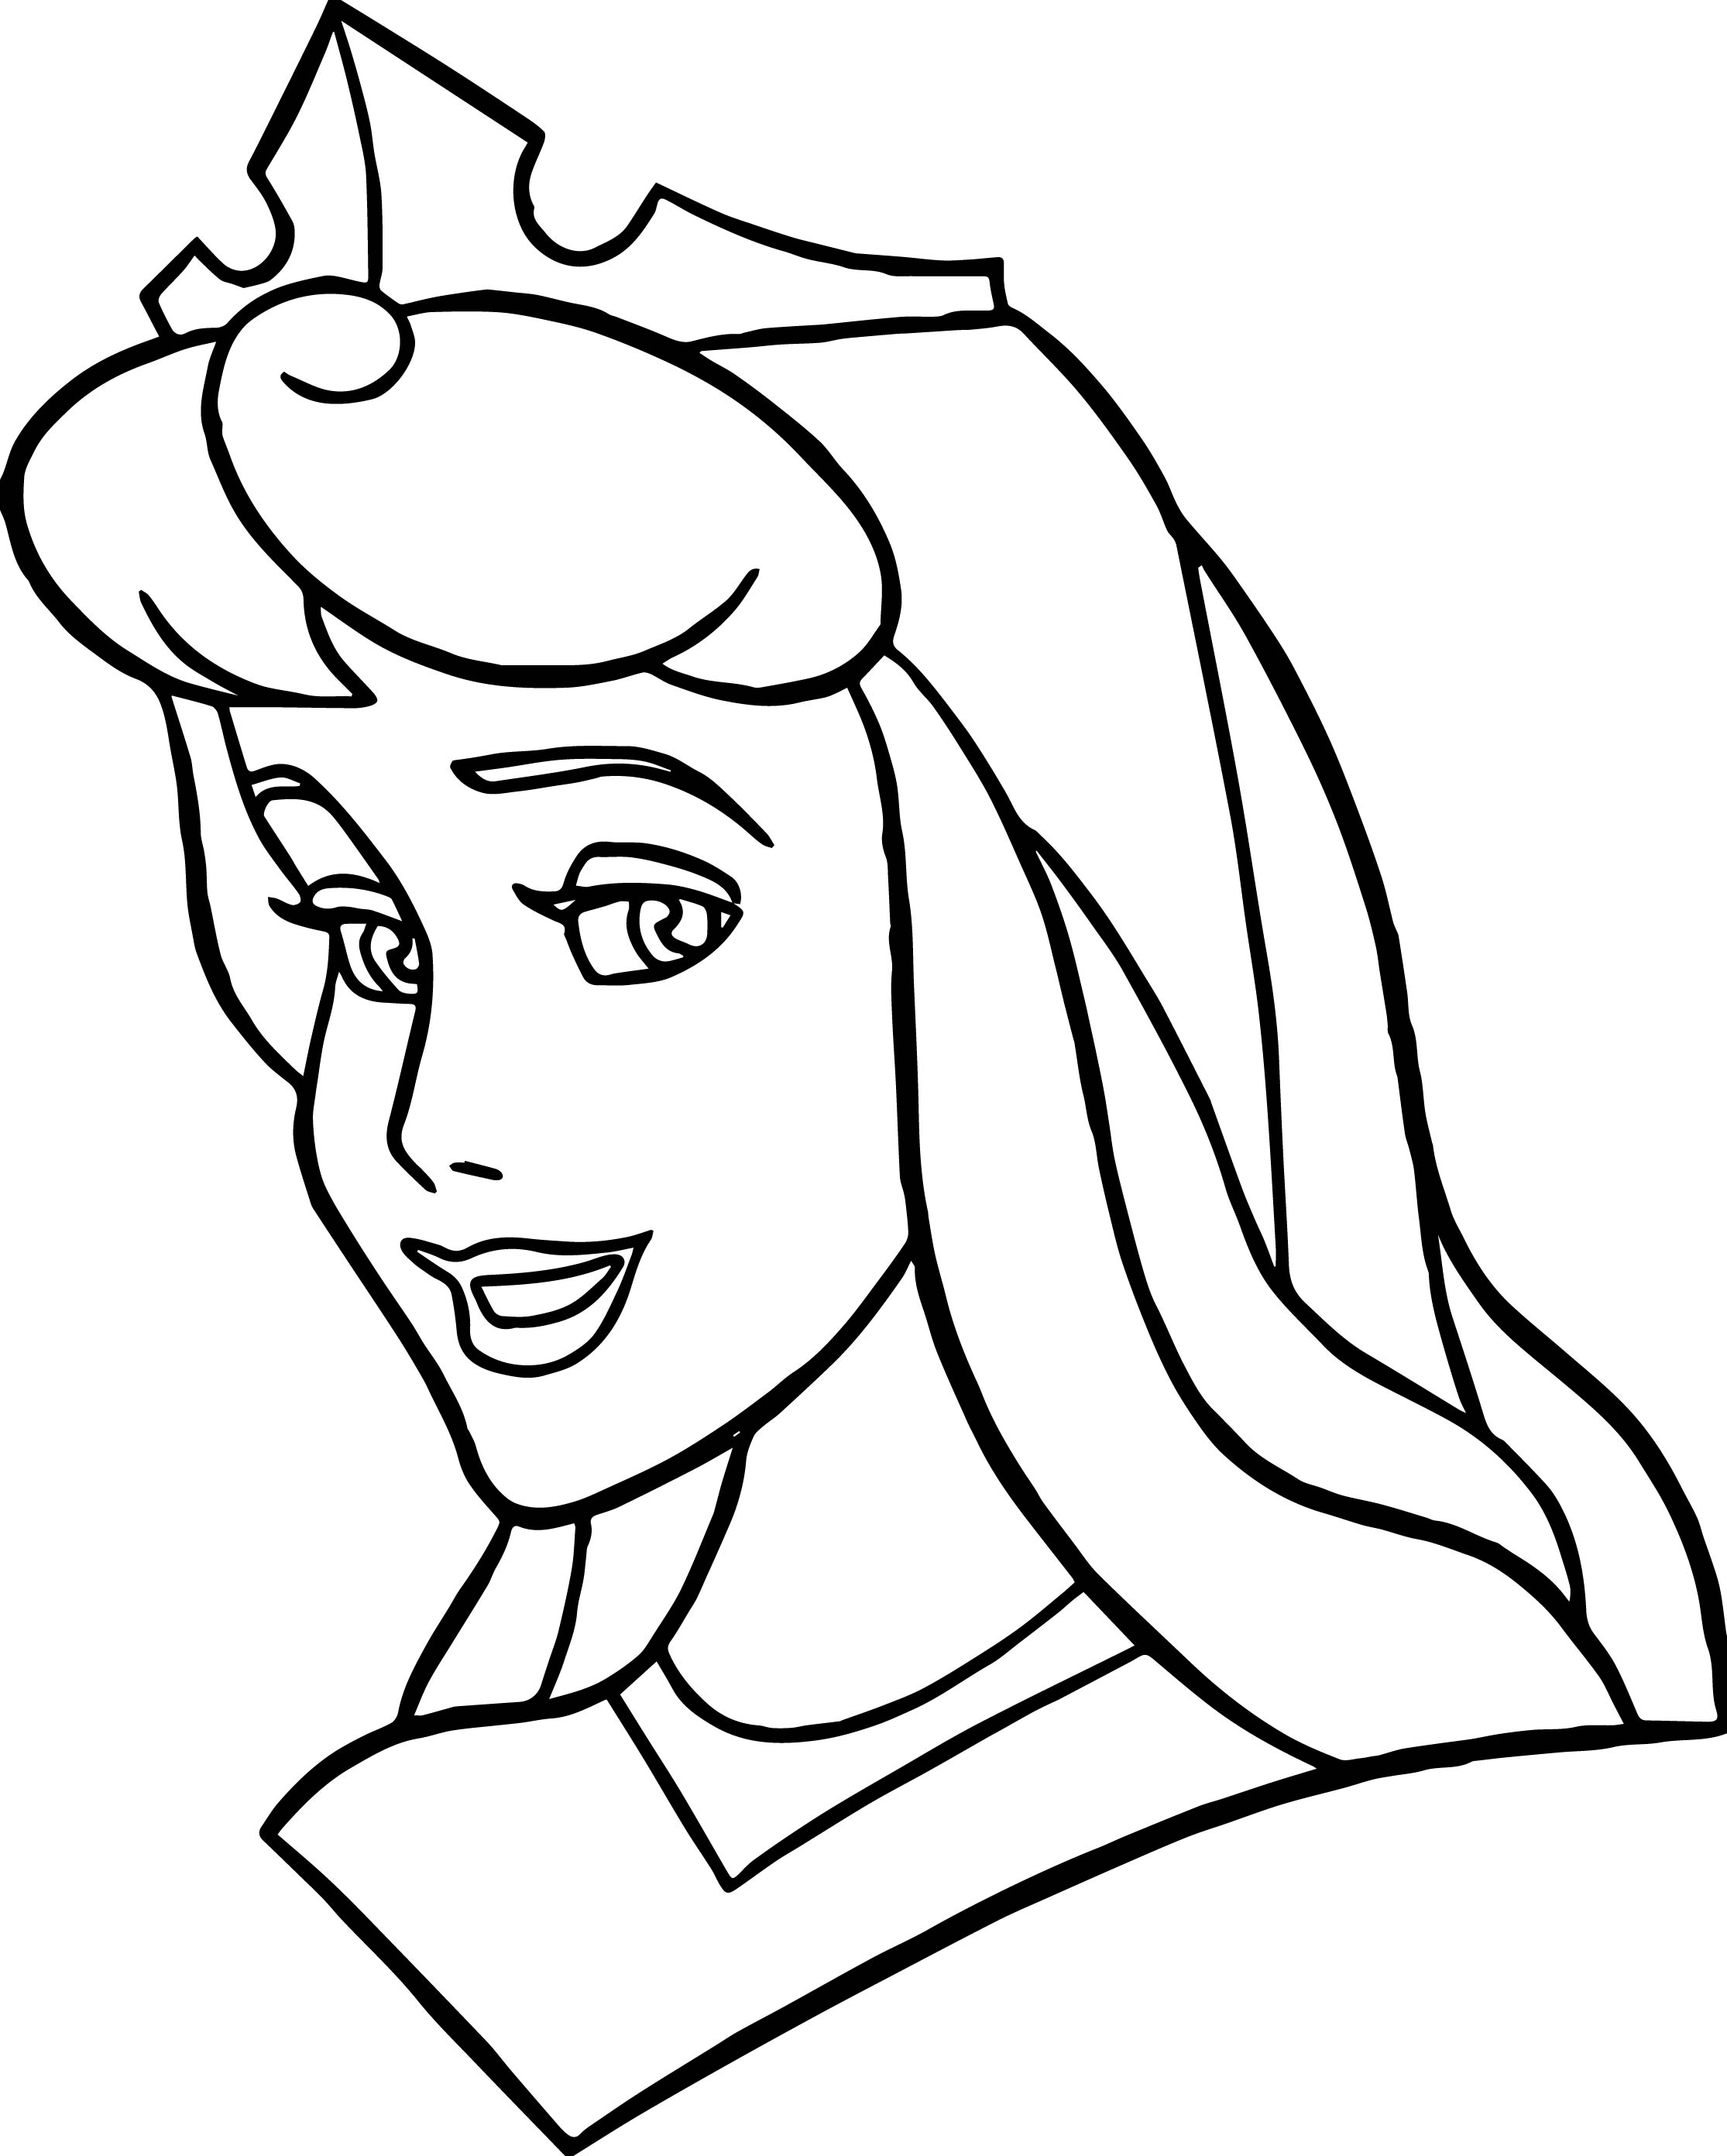 Disney Princess Sleeping Beauty Face Coloring Page Disney Princess Coloring Pages Sleeping